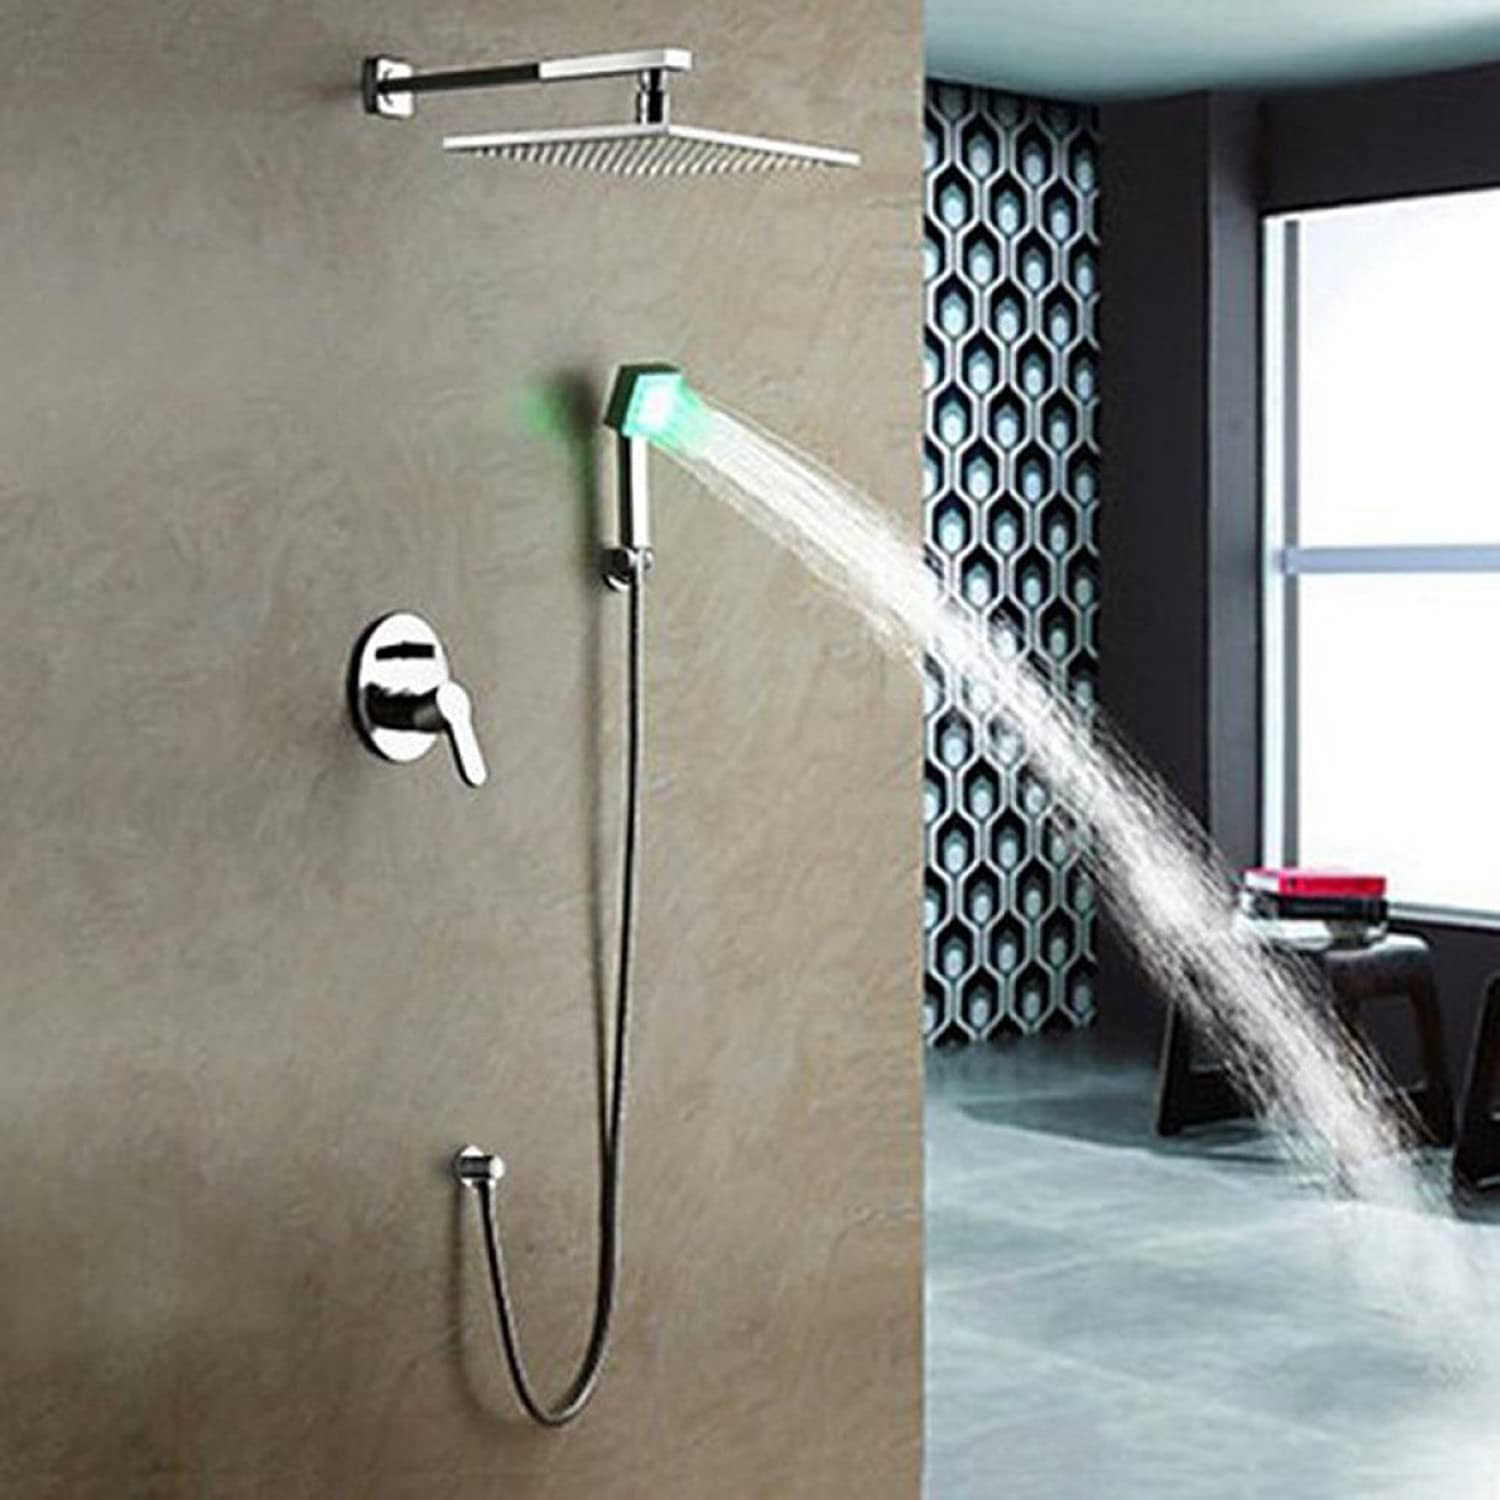 ZHFC Shower faucet Stylish and durable Energy saving Shower set all bronze Family bathroom amenities Top shower